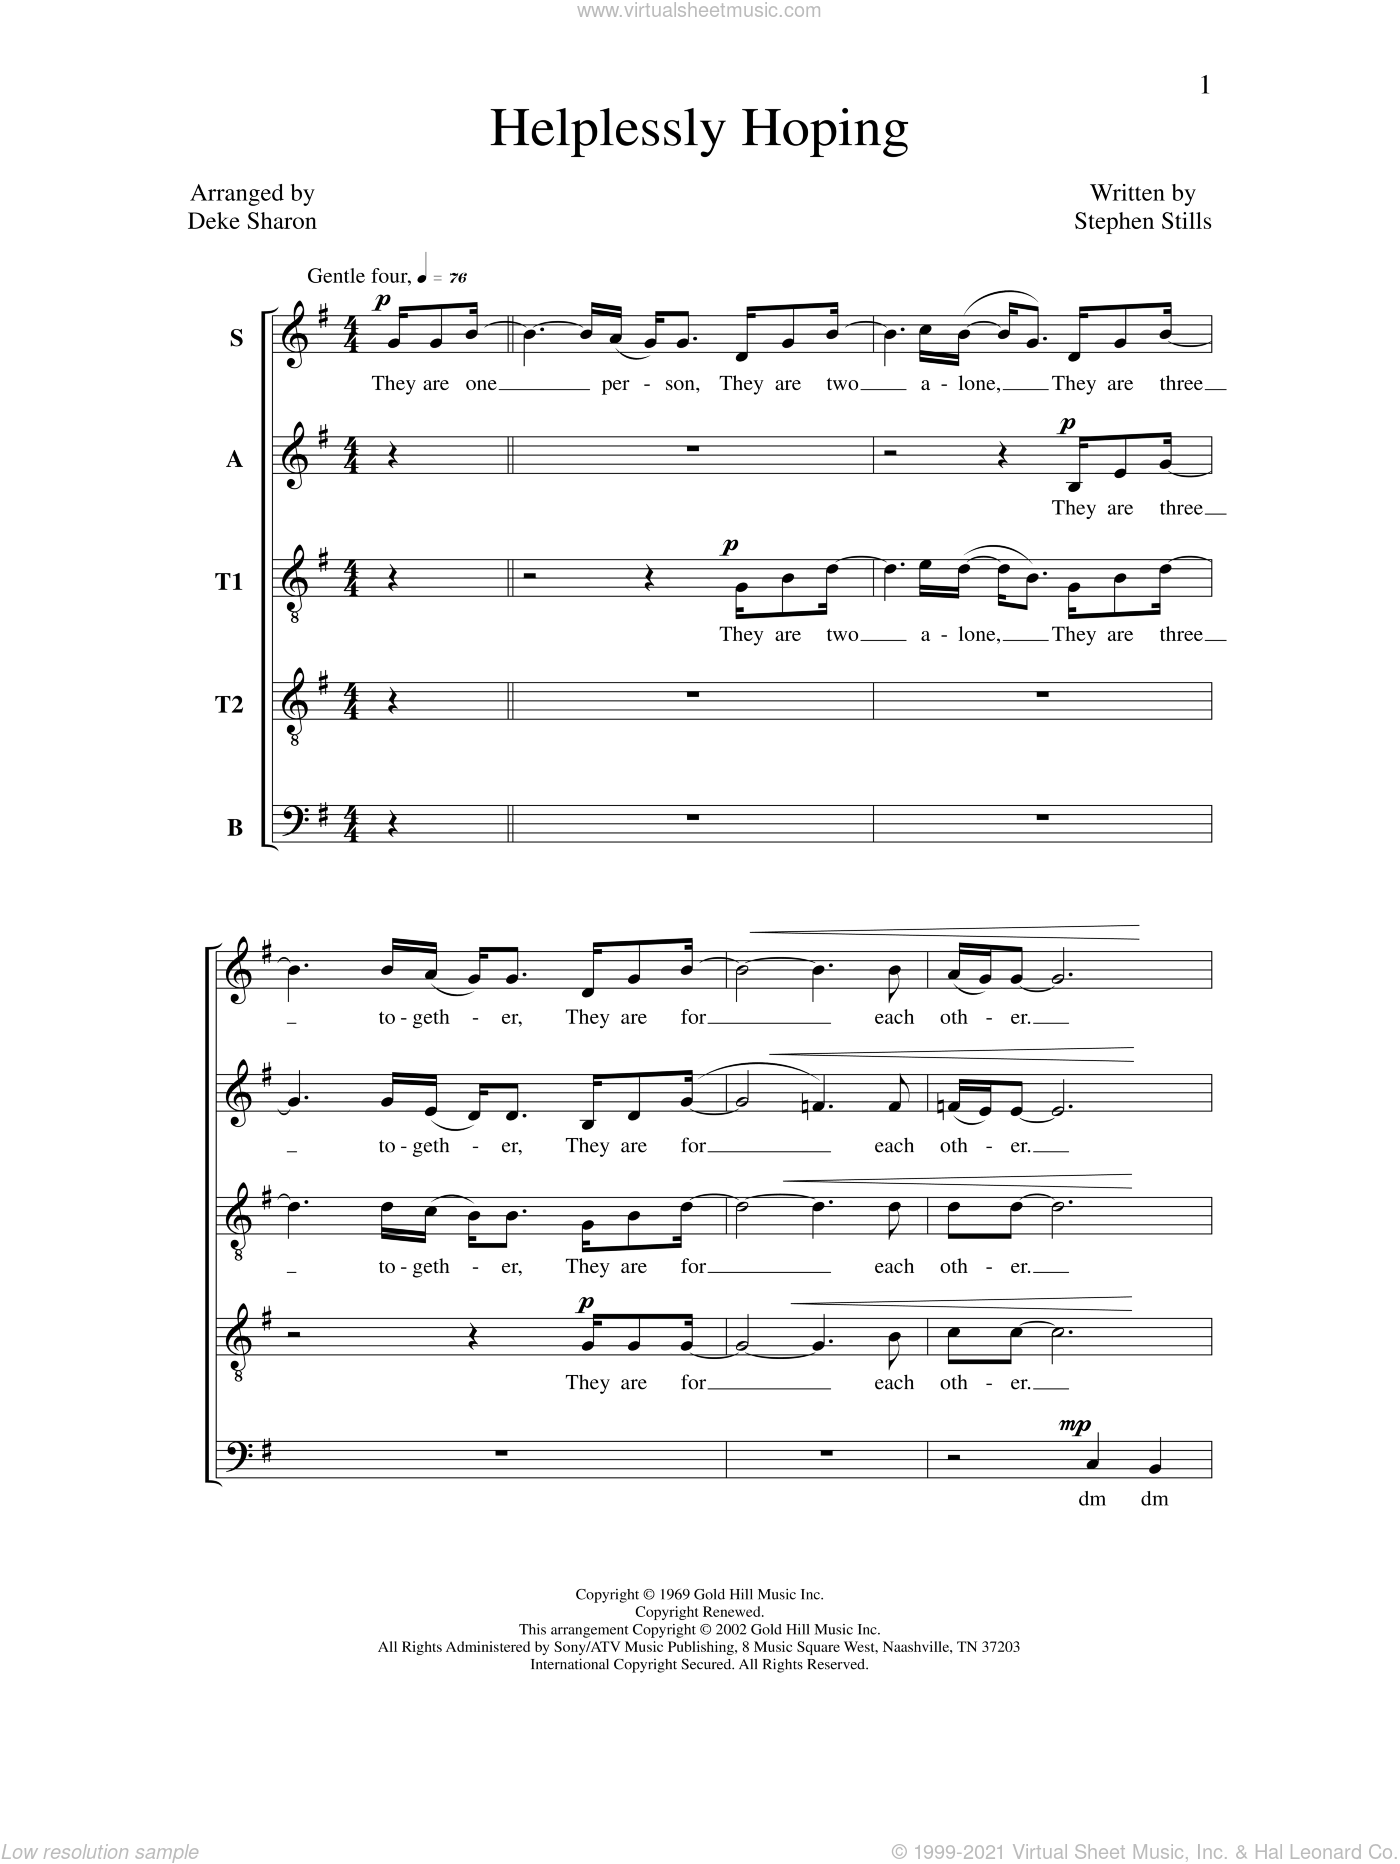 Helplessly Hoping sheet music for choir by Deke Sharon, Anne Raugh and Stephen Stills, intermediate skill level